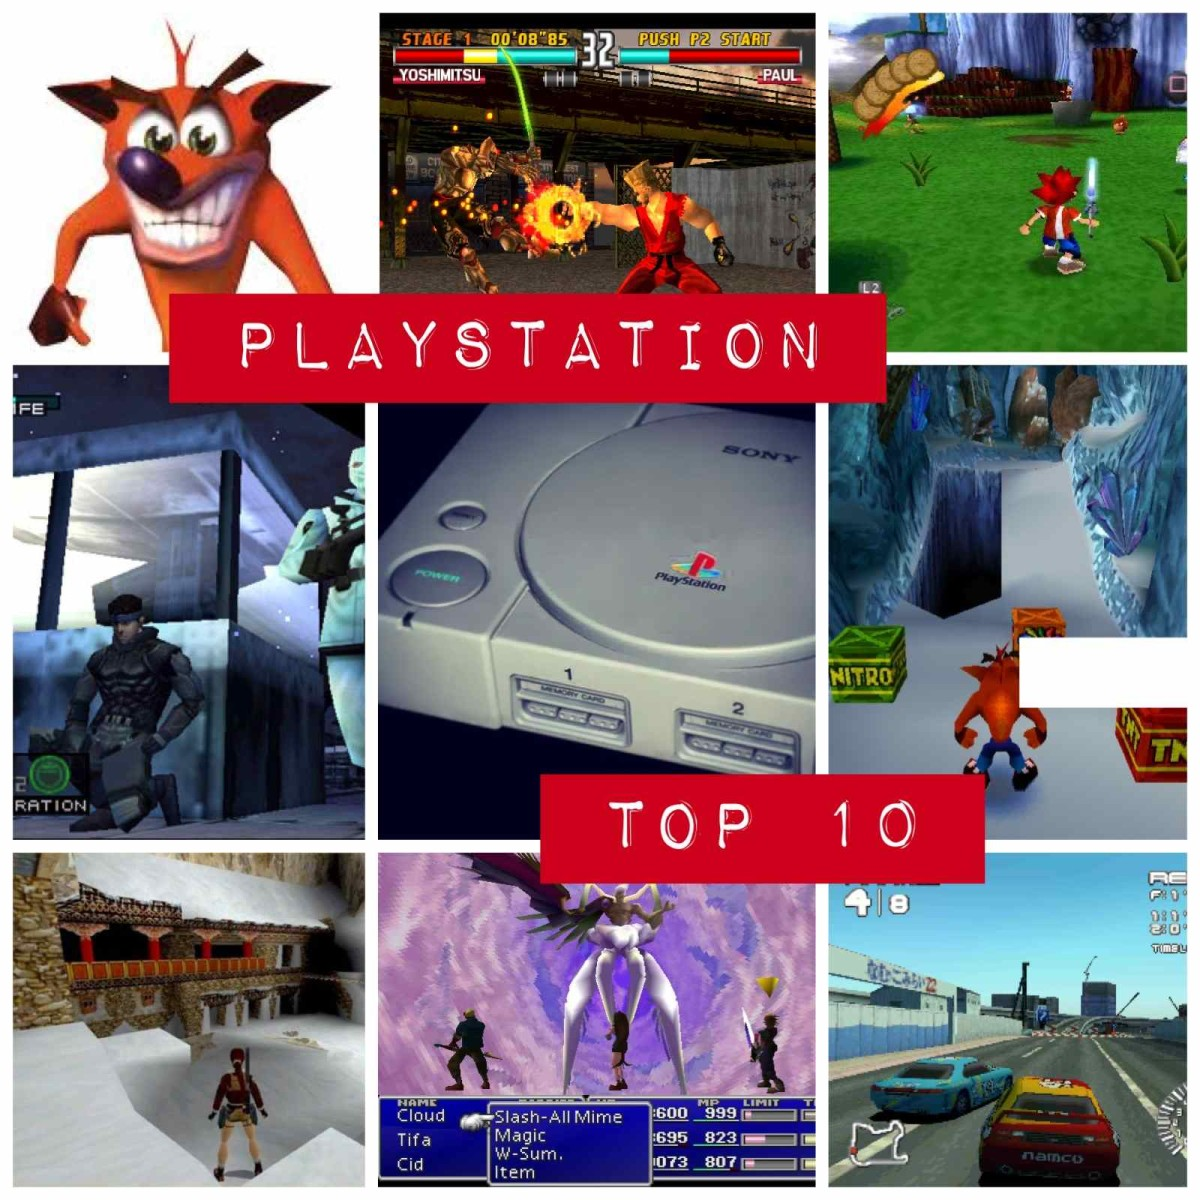 Top 10 Playstation 1 Games - The Best of the Best | LevelSkip